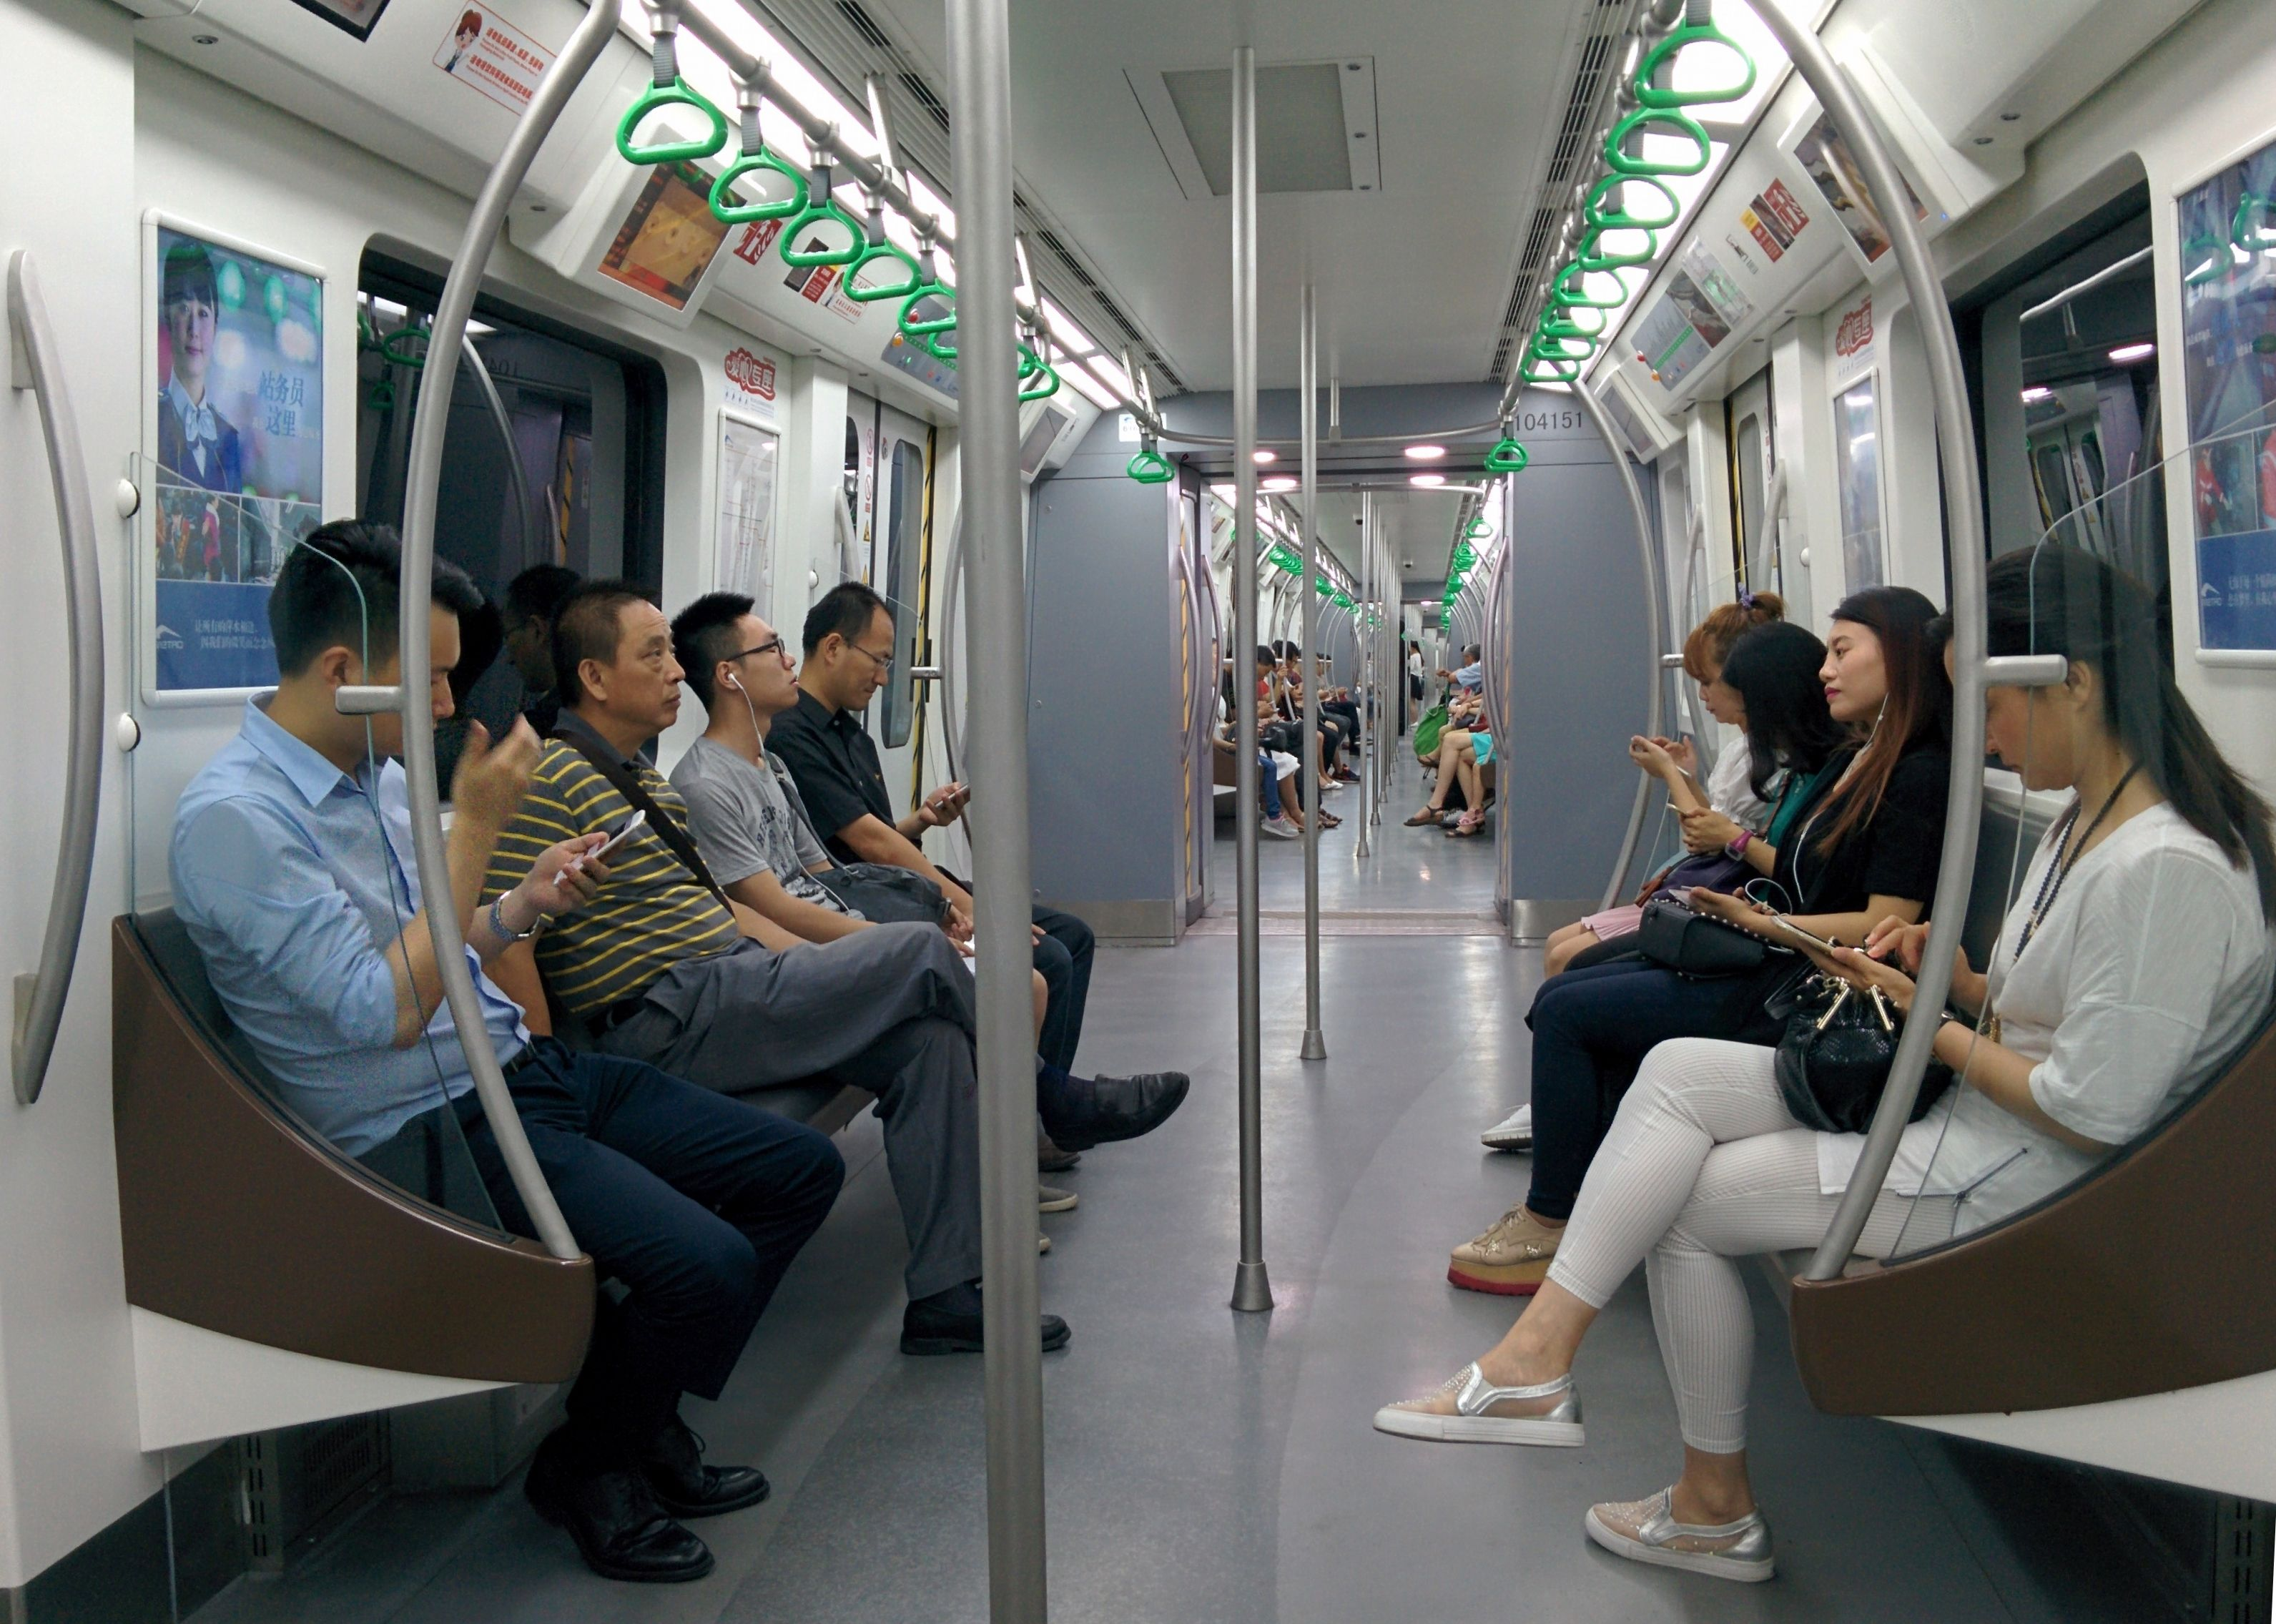 The inside of a Chengdu subway car. All the cars ae connected, so you could theoretically walk from the first to the last car!